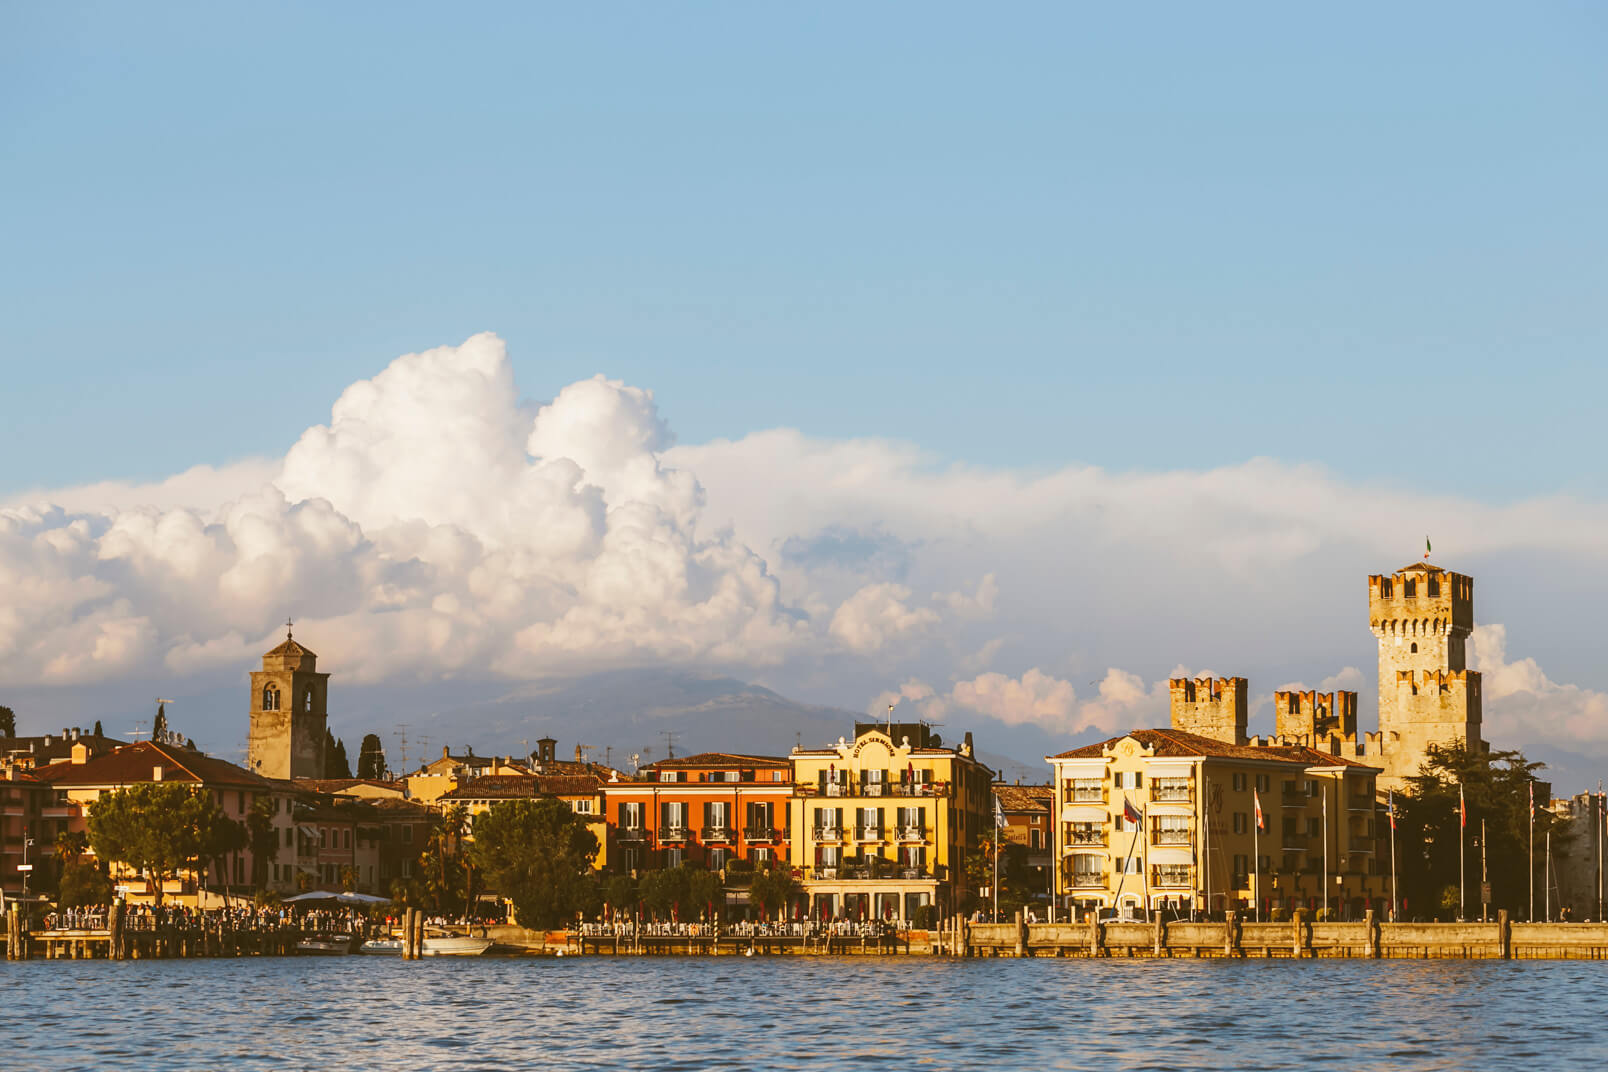 View of Sirmione.